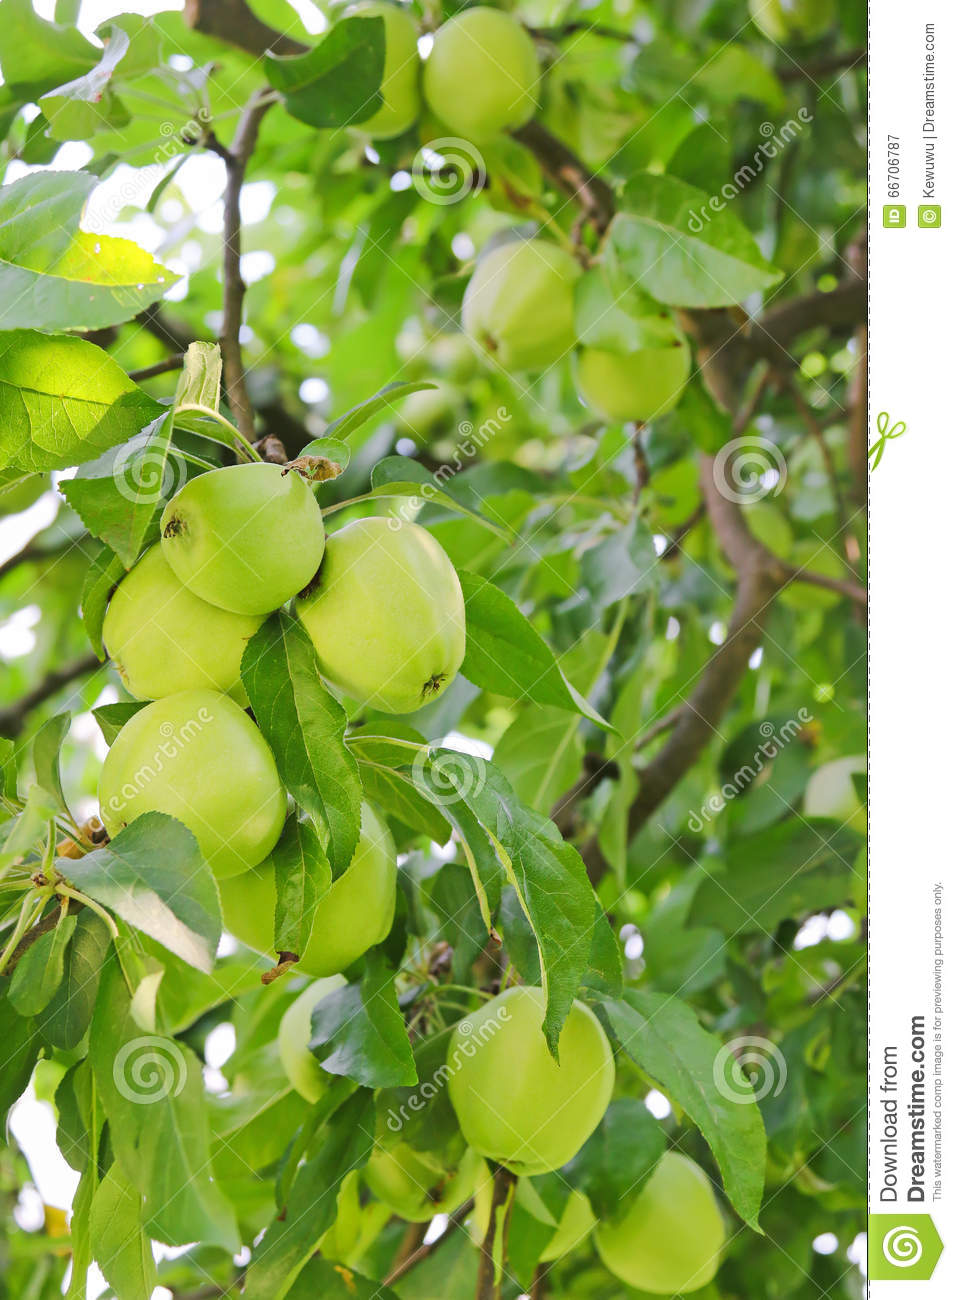 green apple fruit tree. royalty-free stock photo. download organic green apple tree with fruit r